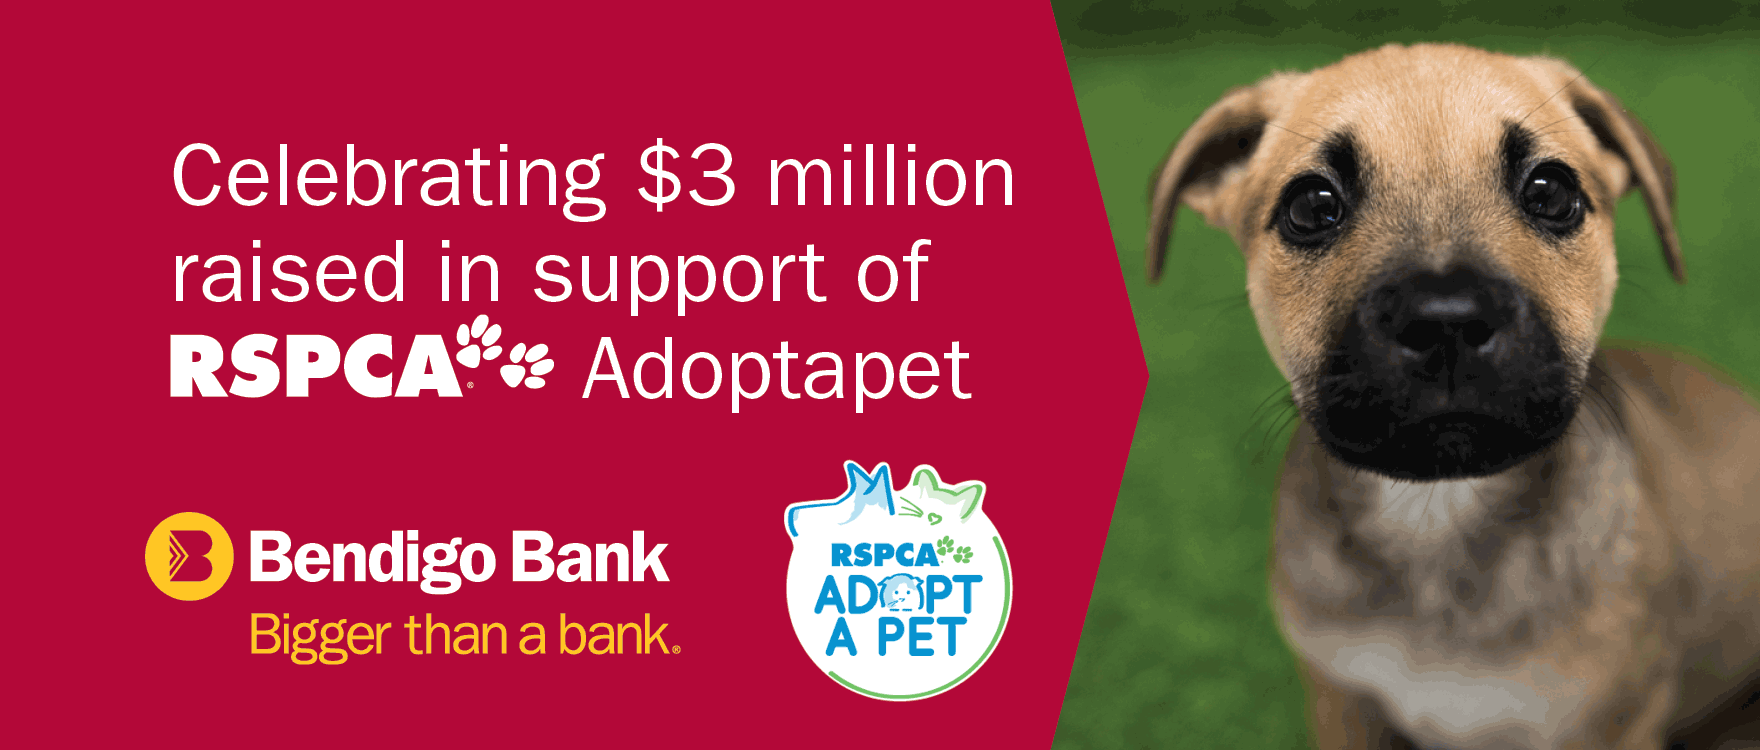 Celebrating $3 million raised in support of RSPCA Adopt-a-pet